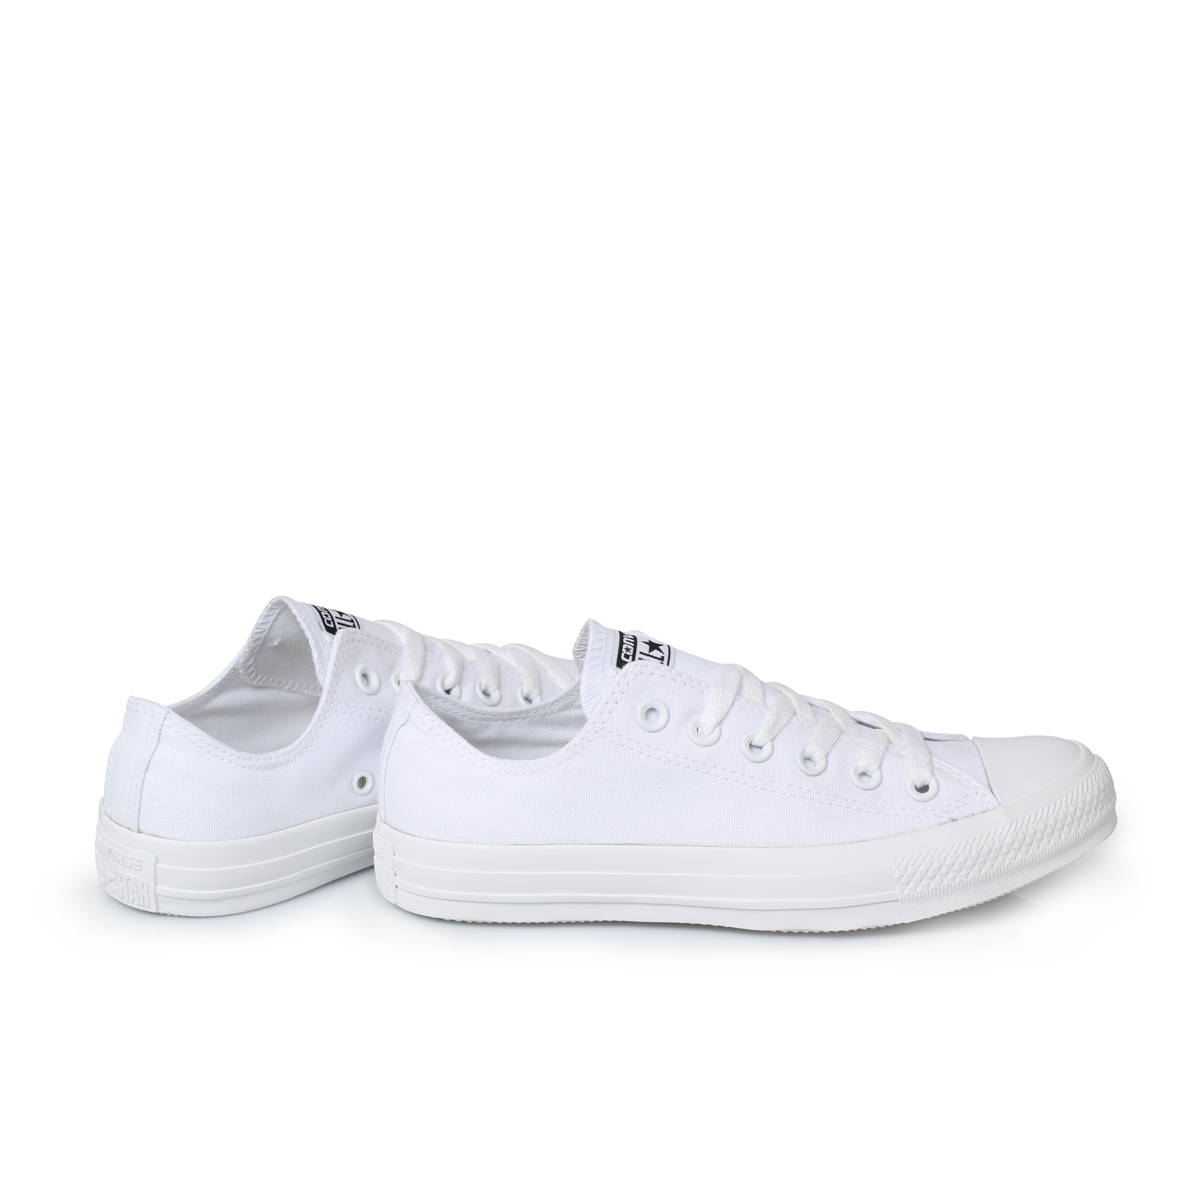 converse white low top spec chuck taylor mens womens. Black Bedroom Furniture Sets. Home Design Ideas